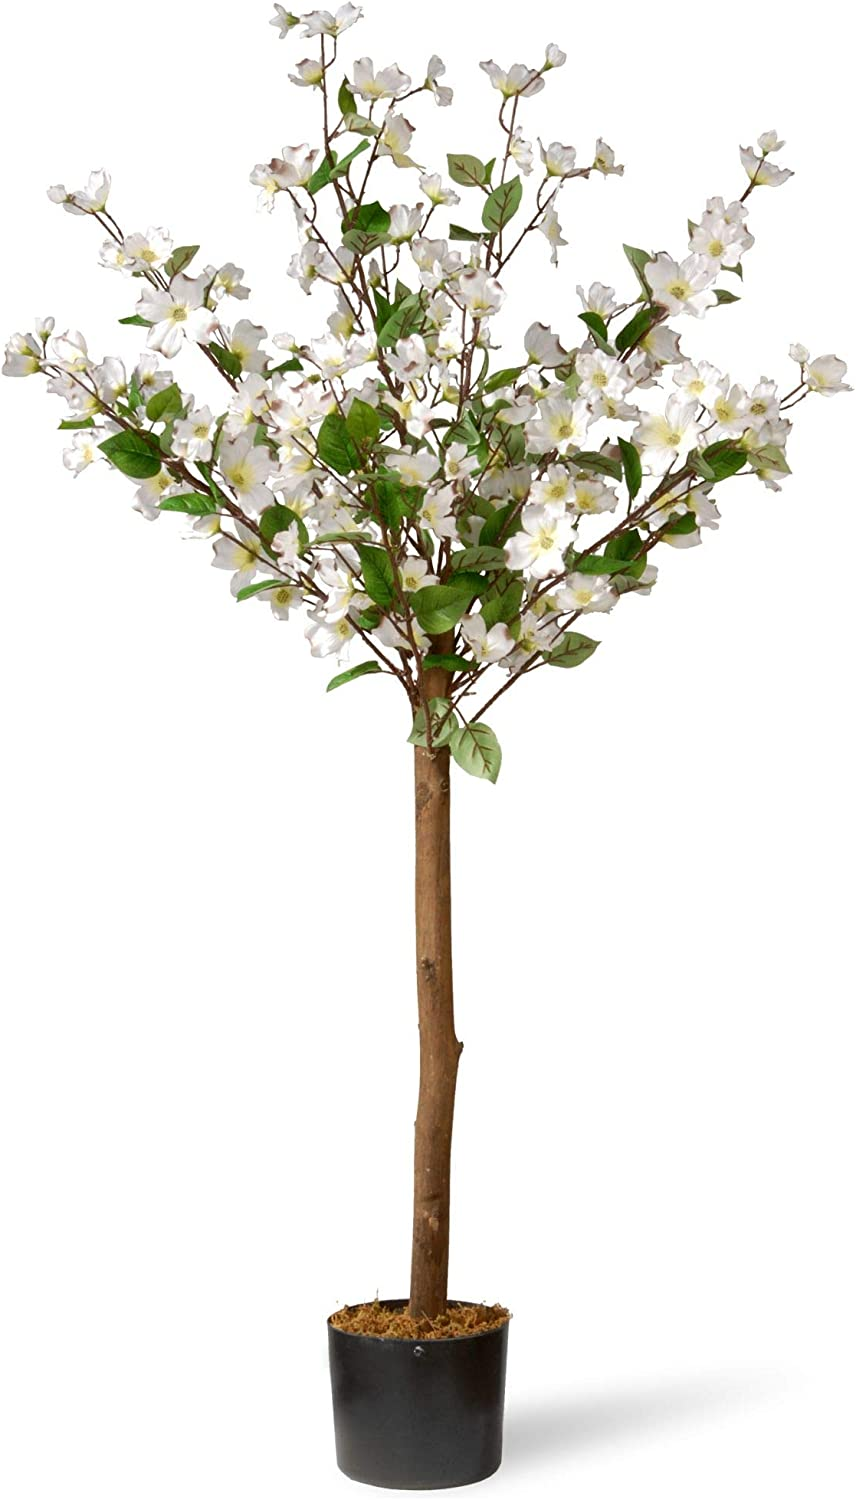 CC Christmas Decor 4' Potted excellence Dogwood with White Artificial Max 69% OFF Tree